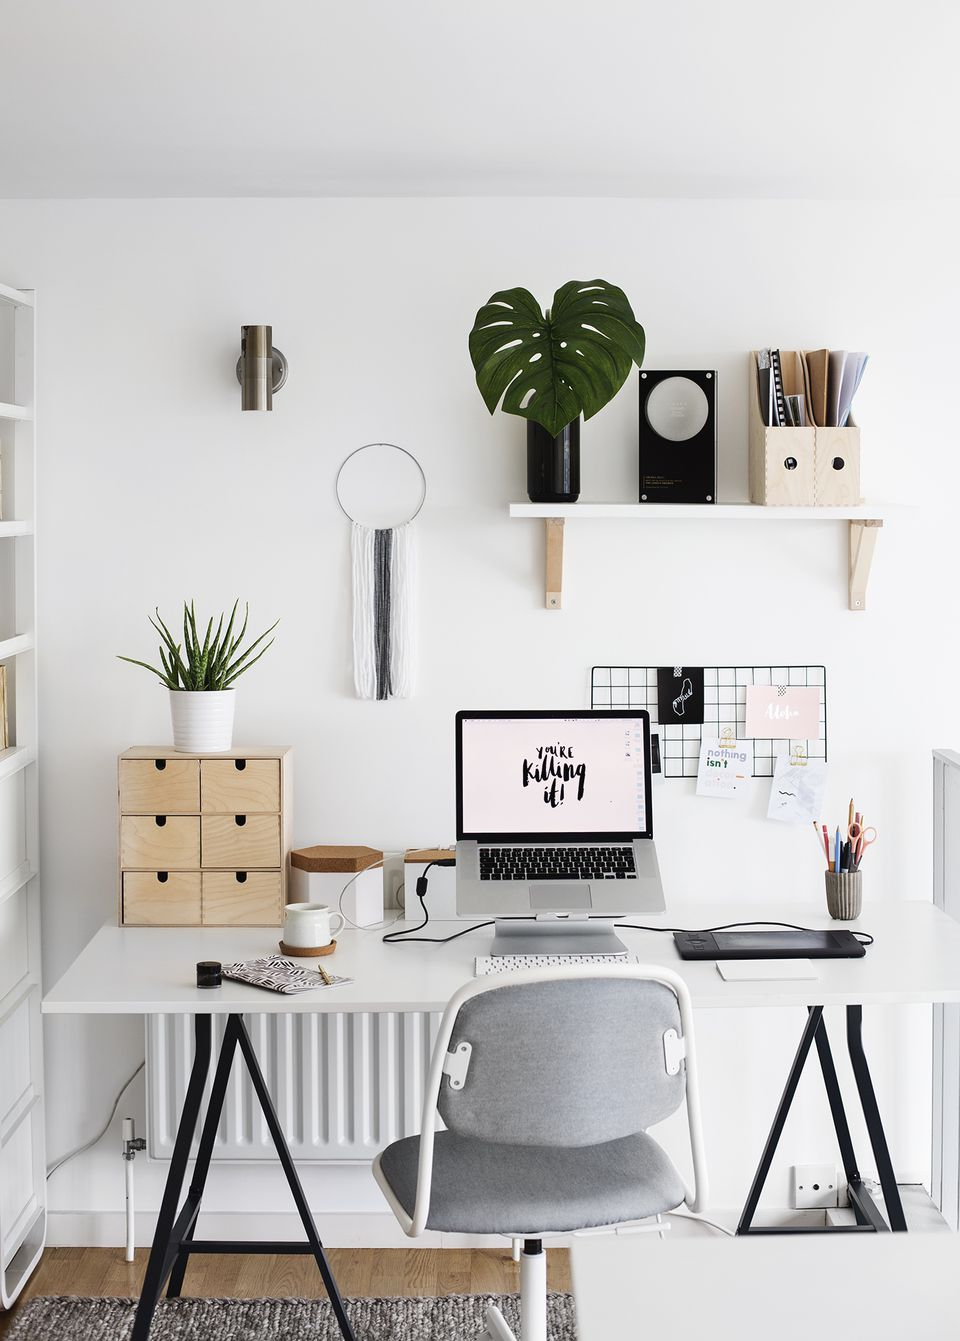 8 Office Decor Tips to Maximize Your Productivity